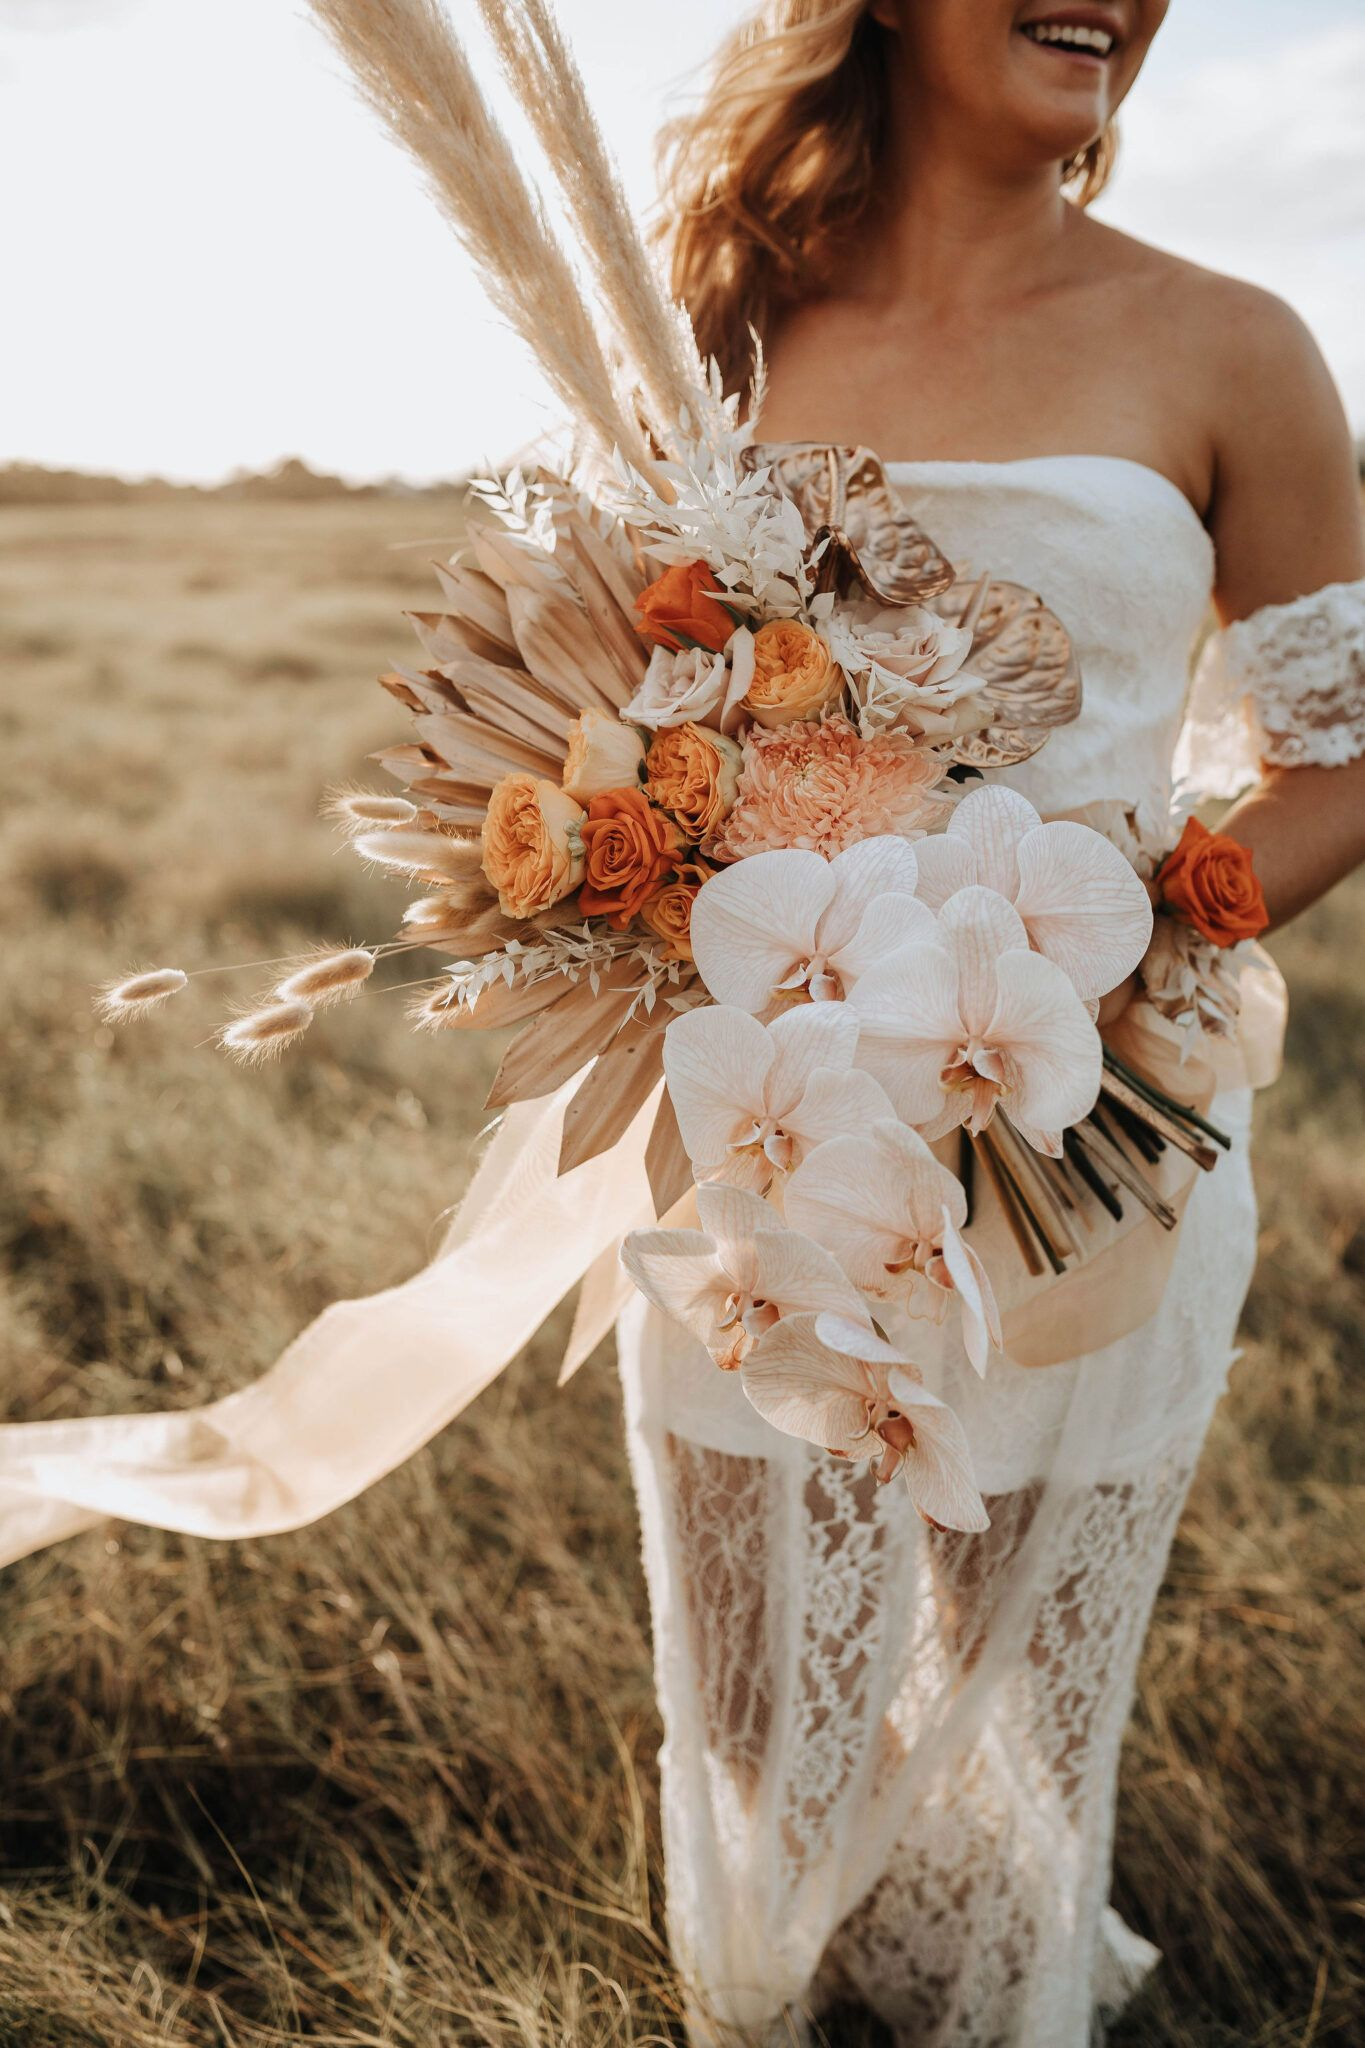 Pin On Elopement Inspiration